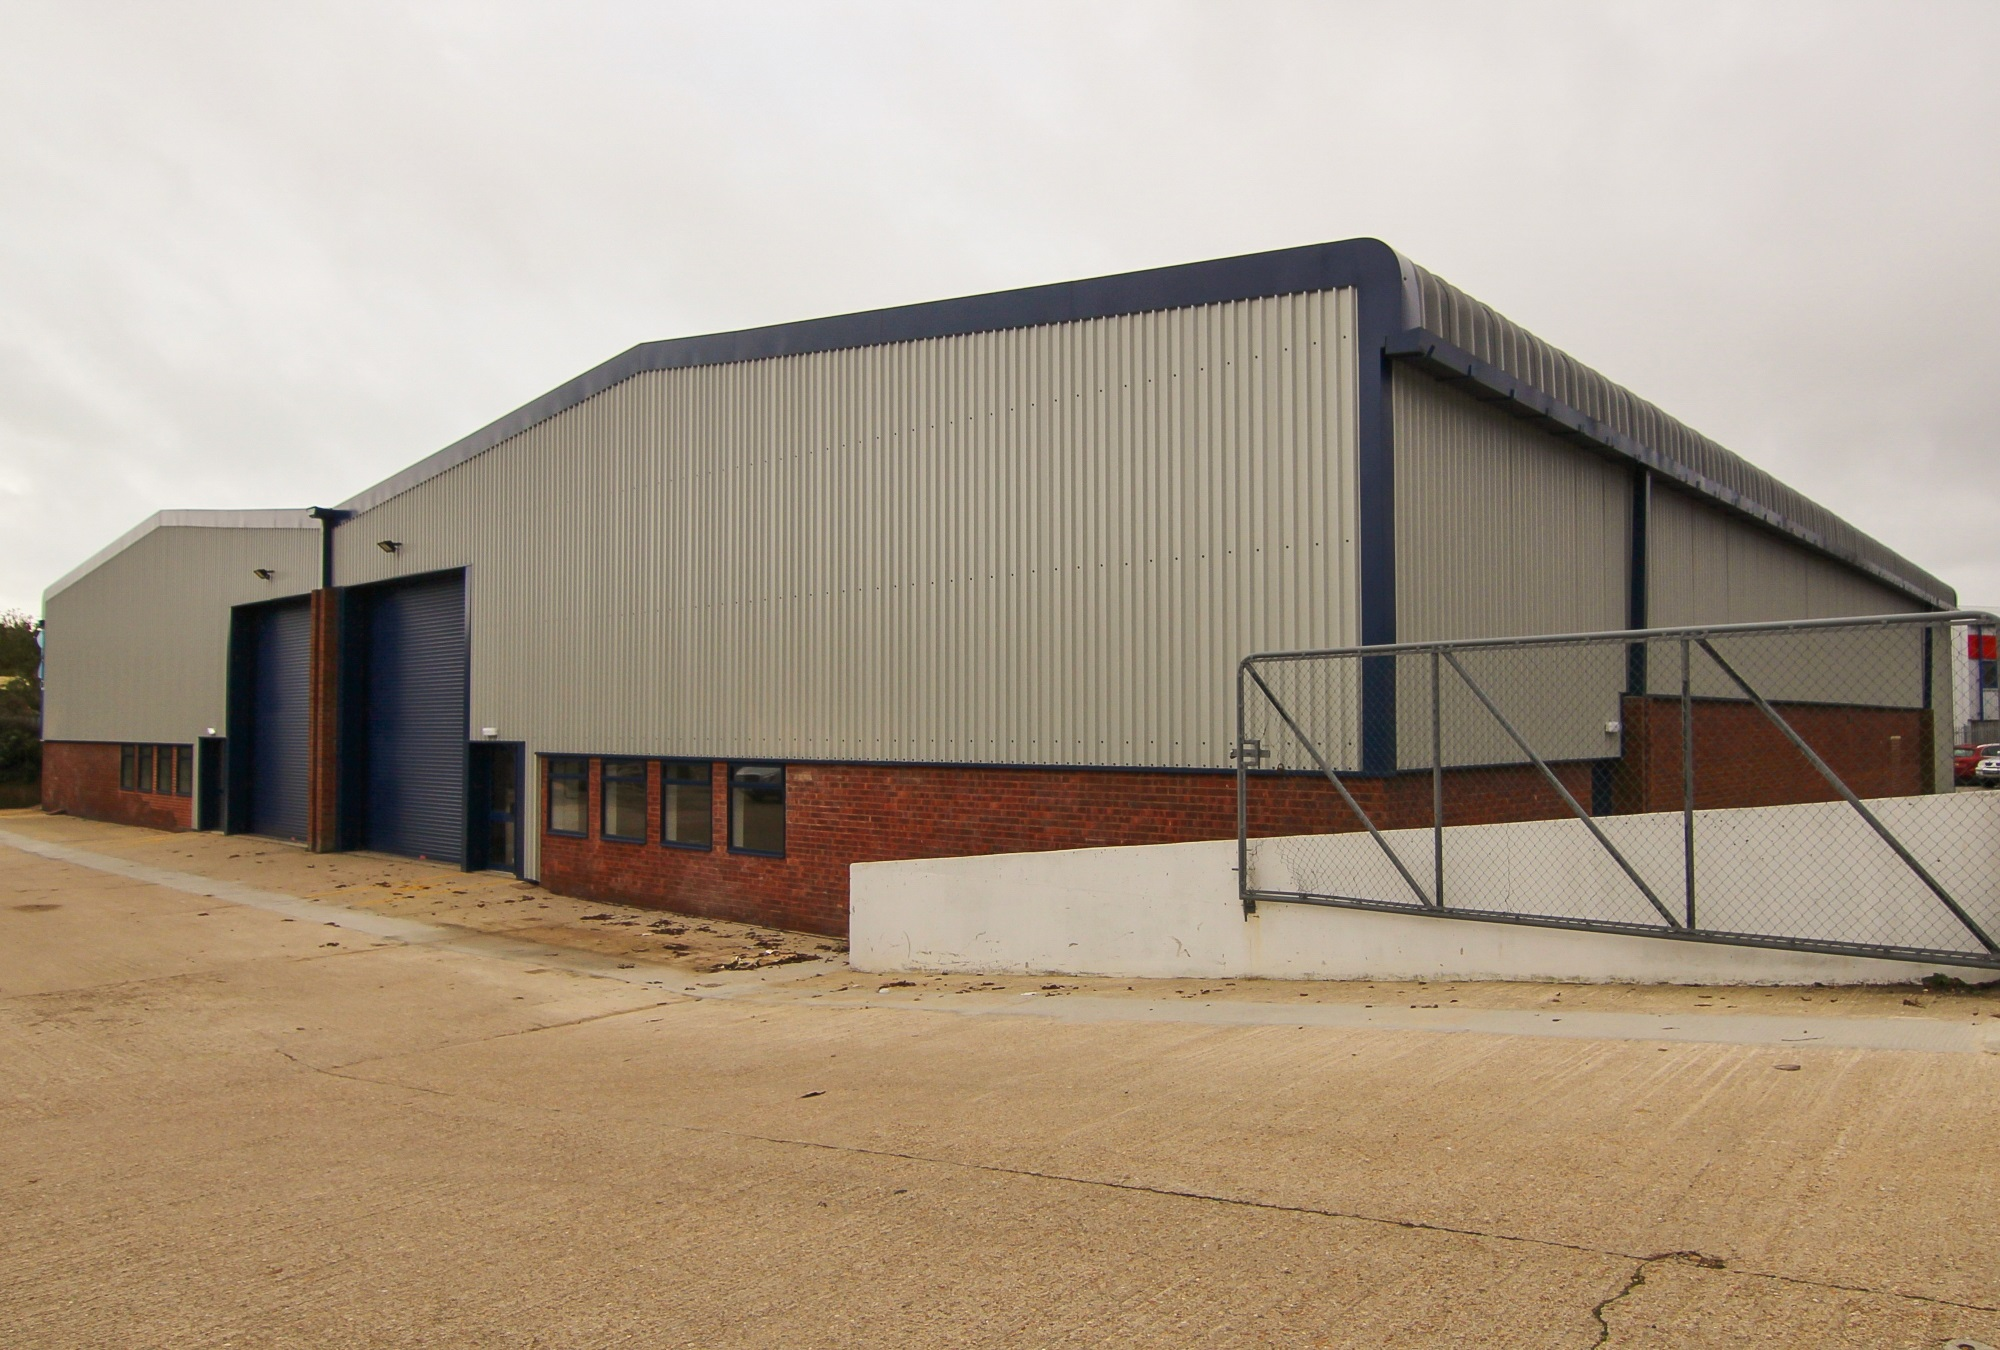 a ramp leading down towards the industrial building unit